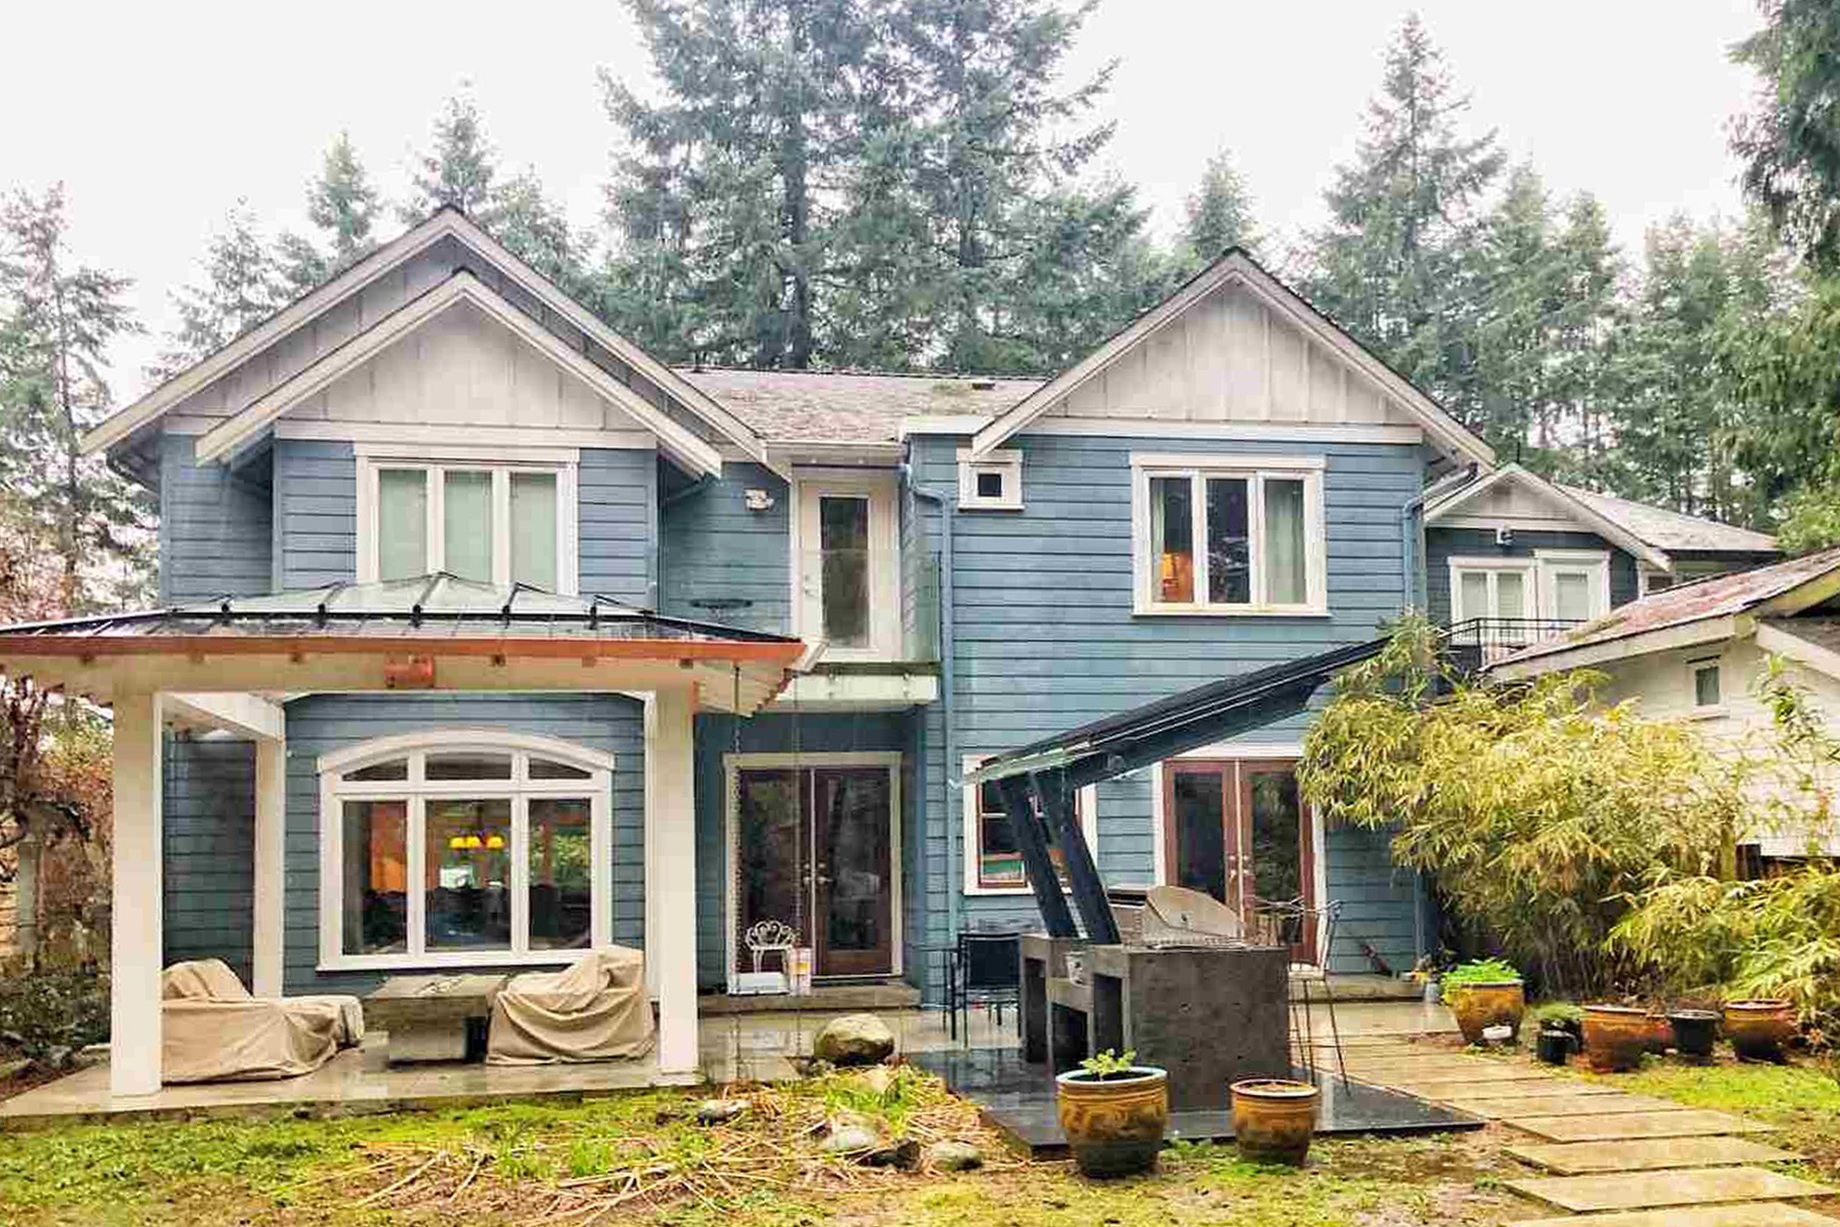 north vancouver foreclosures for sale prices